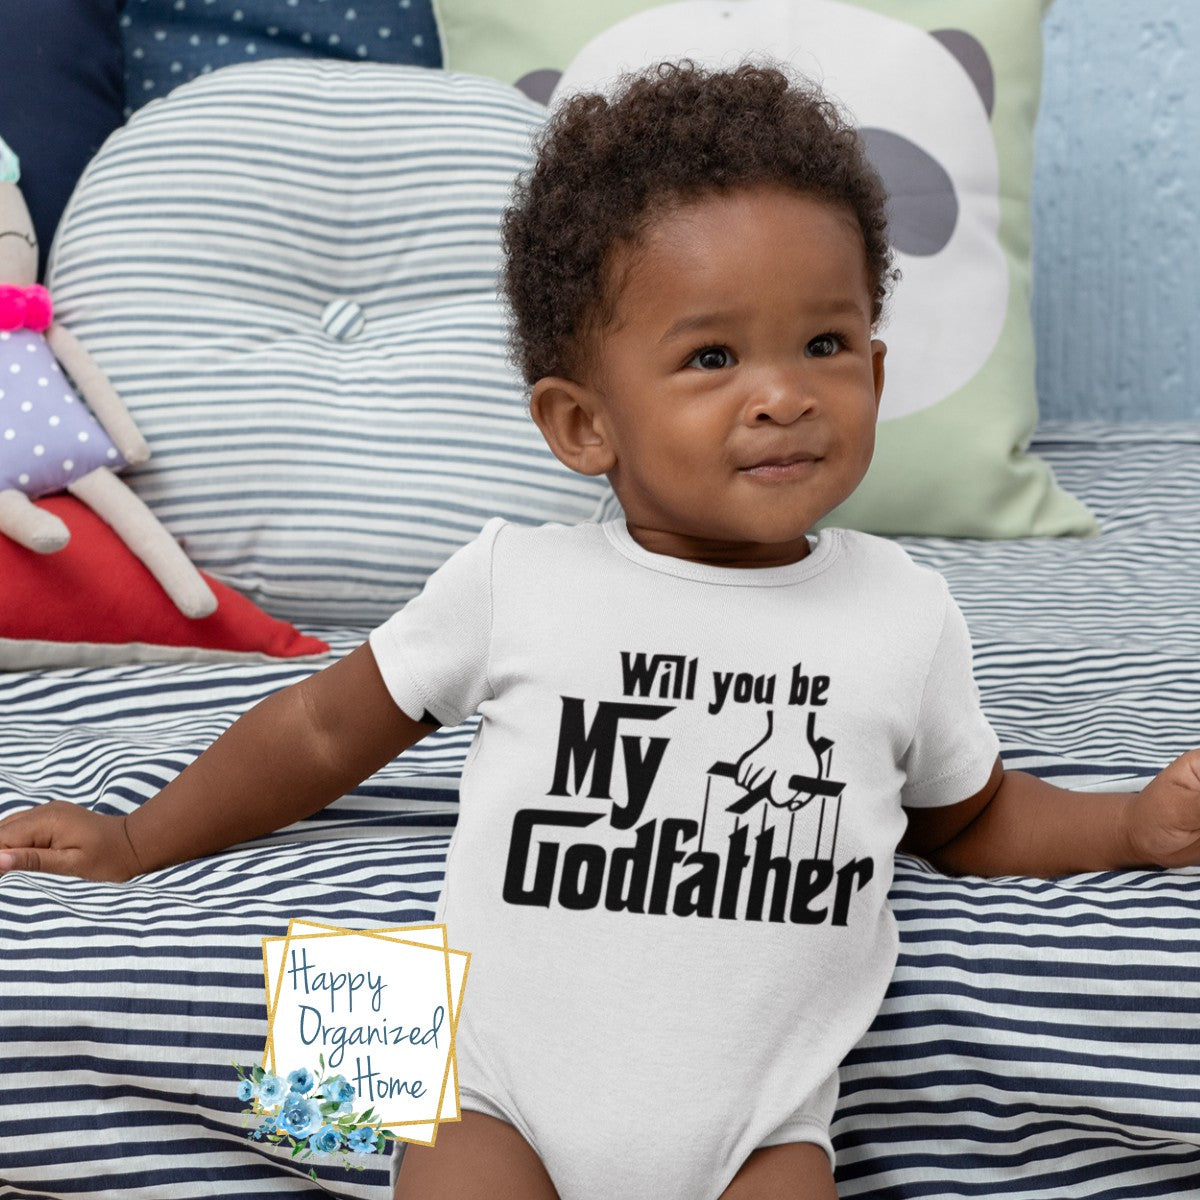 Will you be my Godfather - Infant Bodysuit